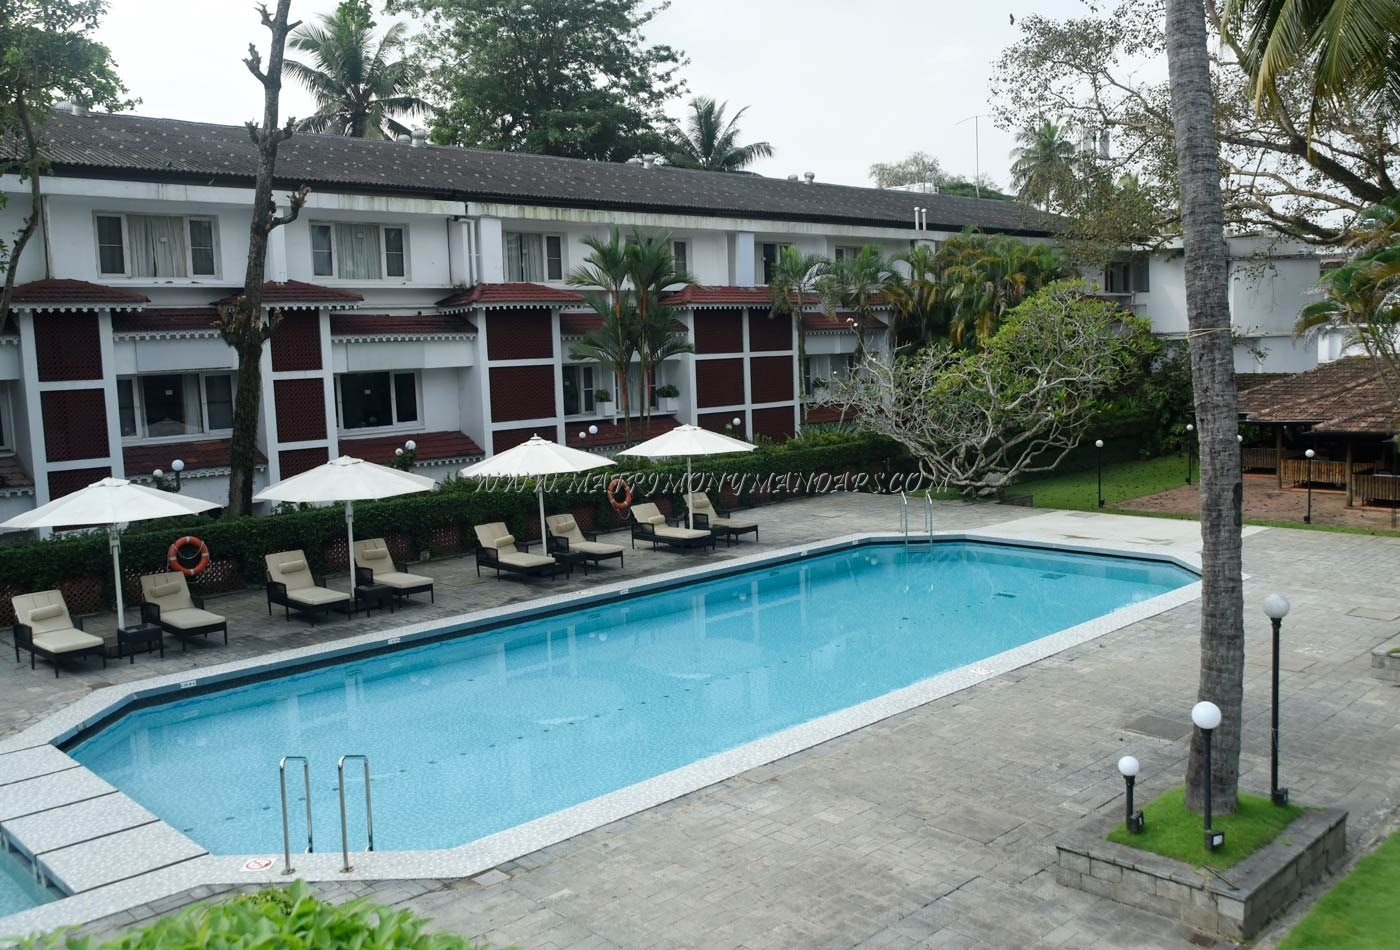 Find the availability of the Casino Hotel - Poolside Lawn in Willingdon Island, Kochi and avail special offers